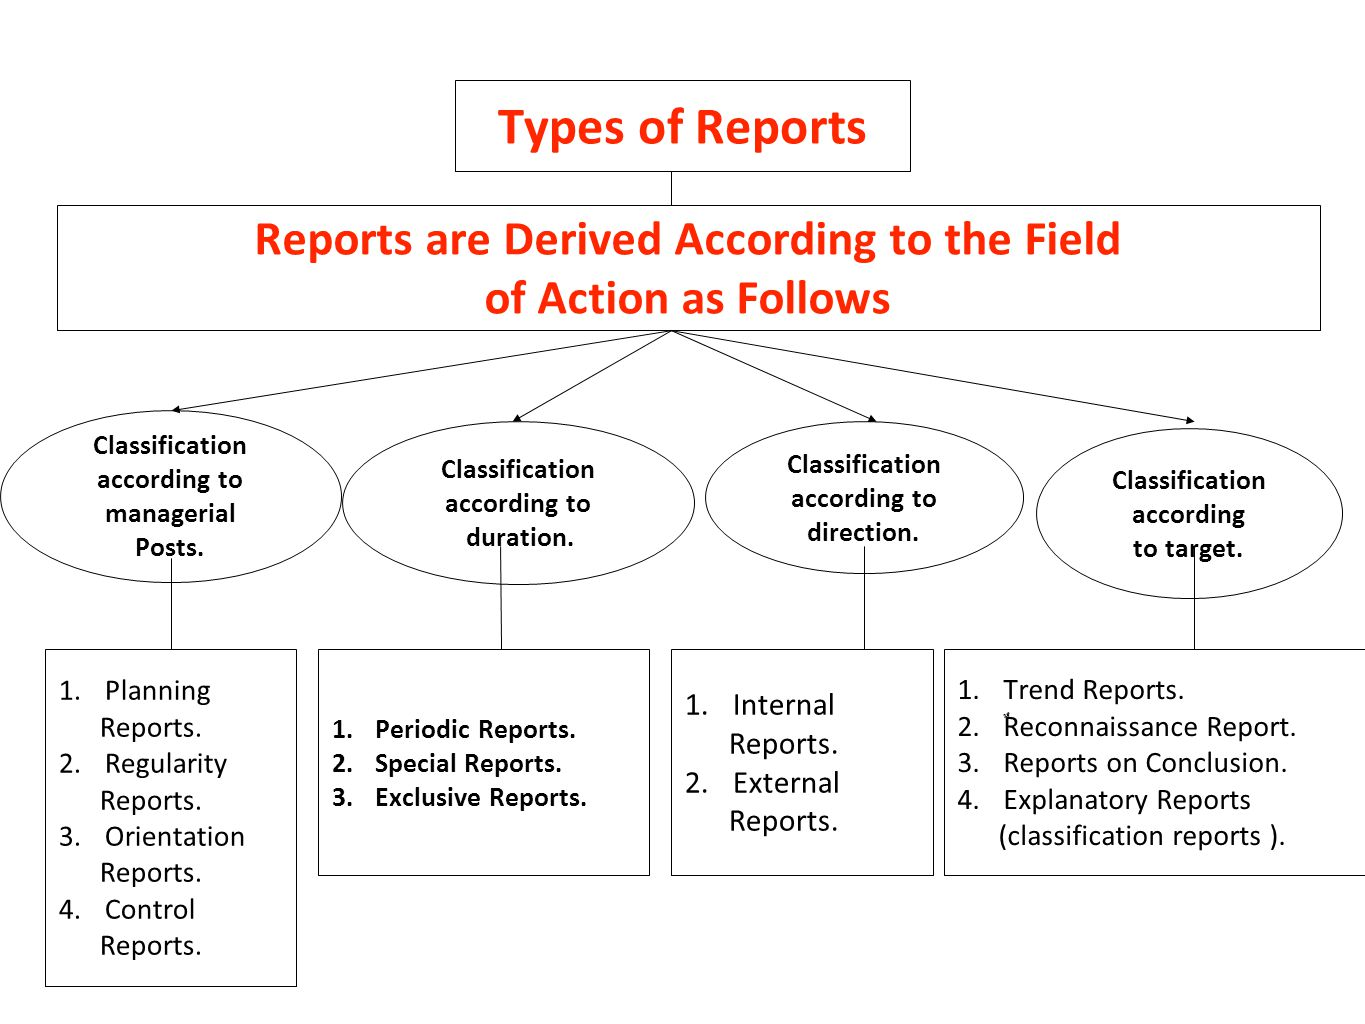 Reports are Derived According to the Field